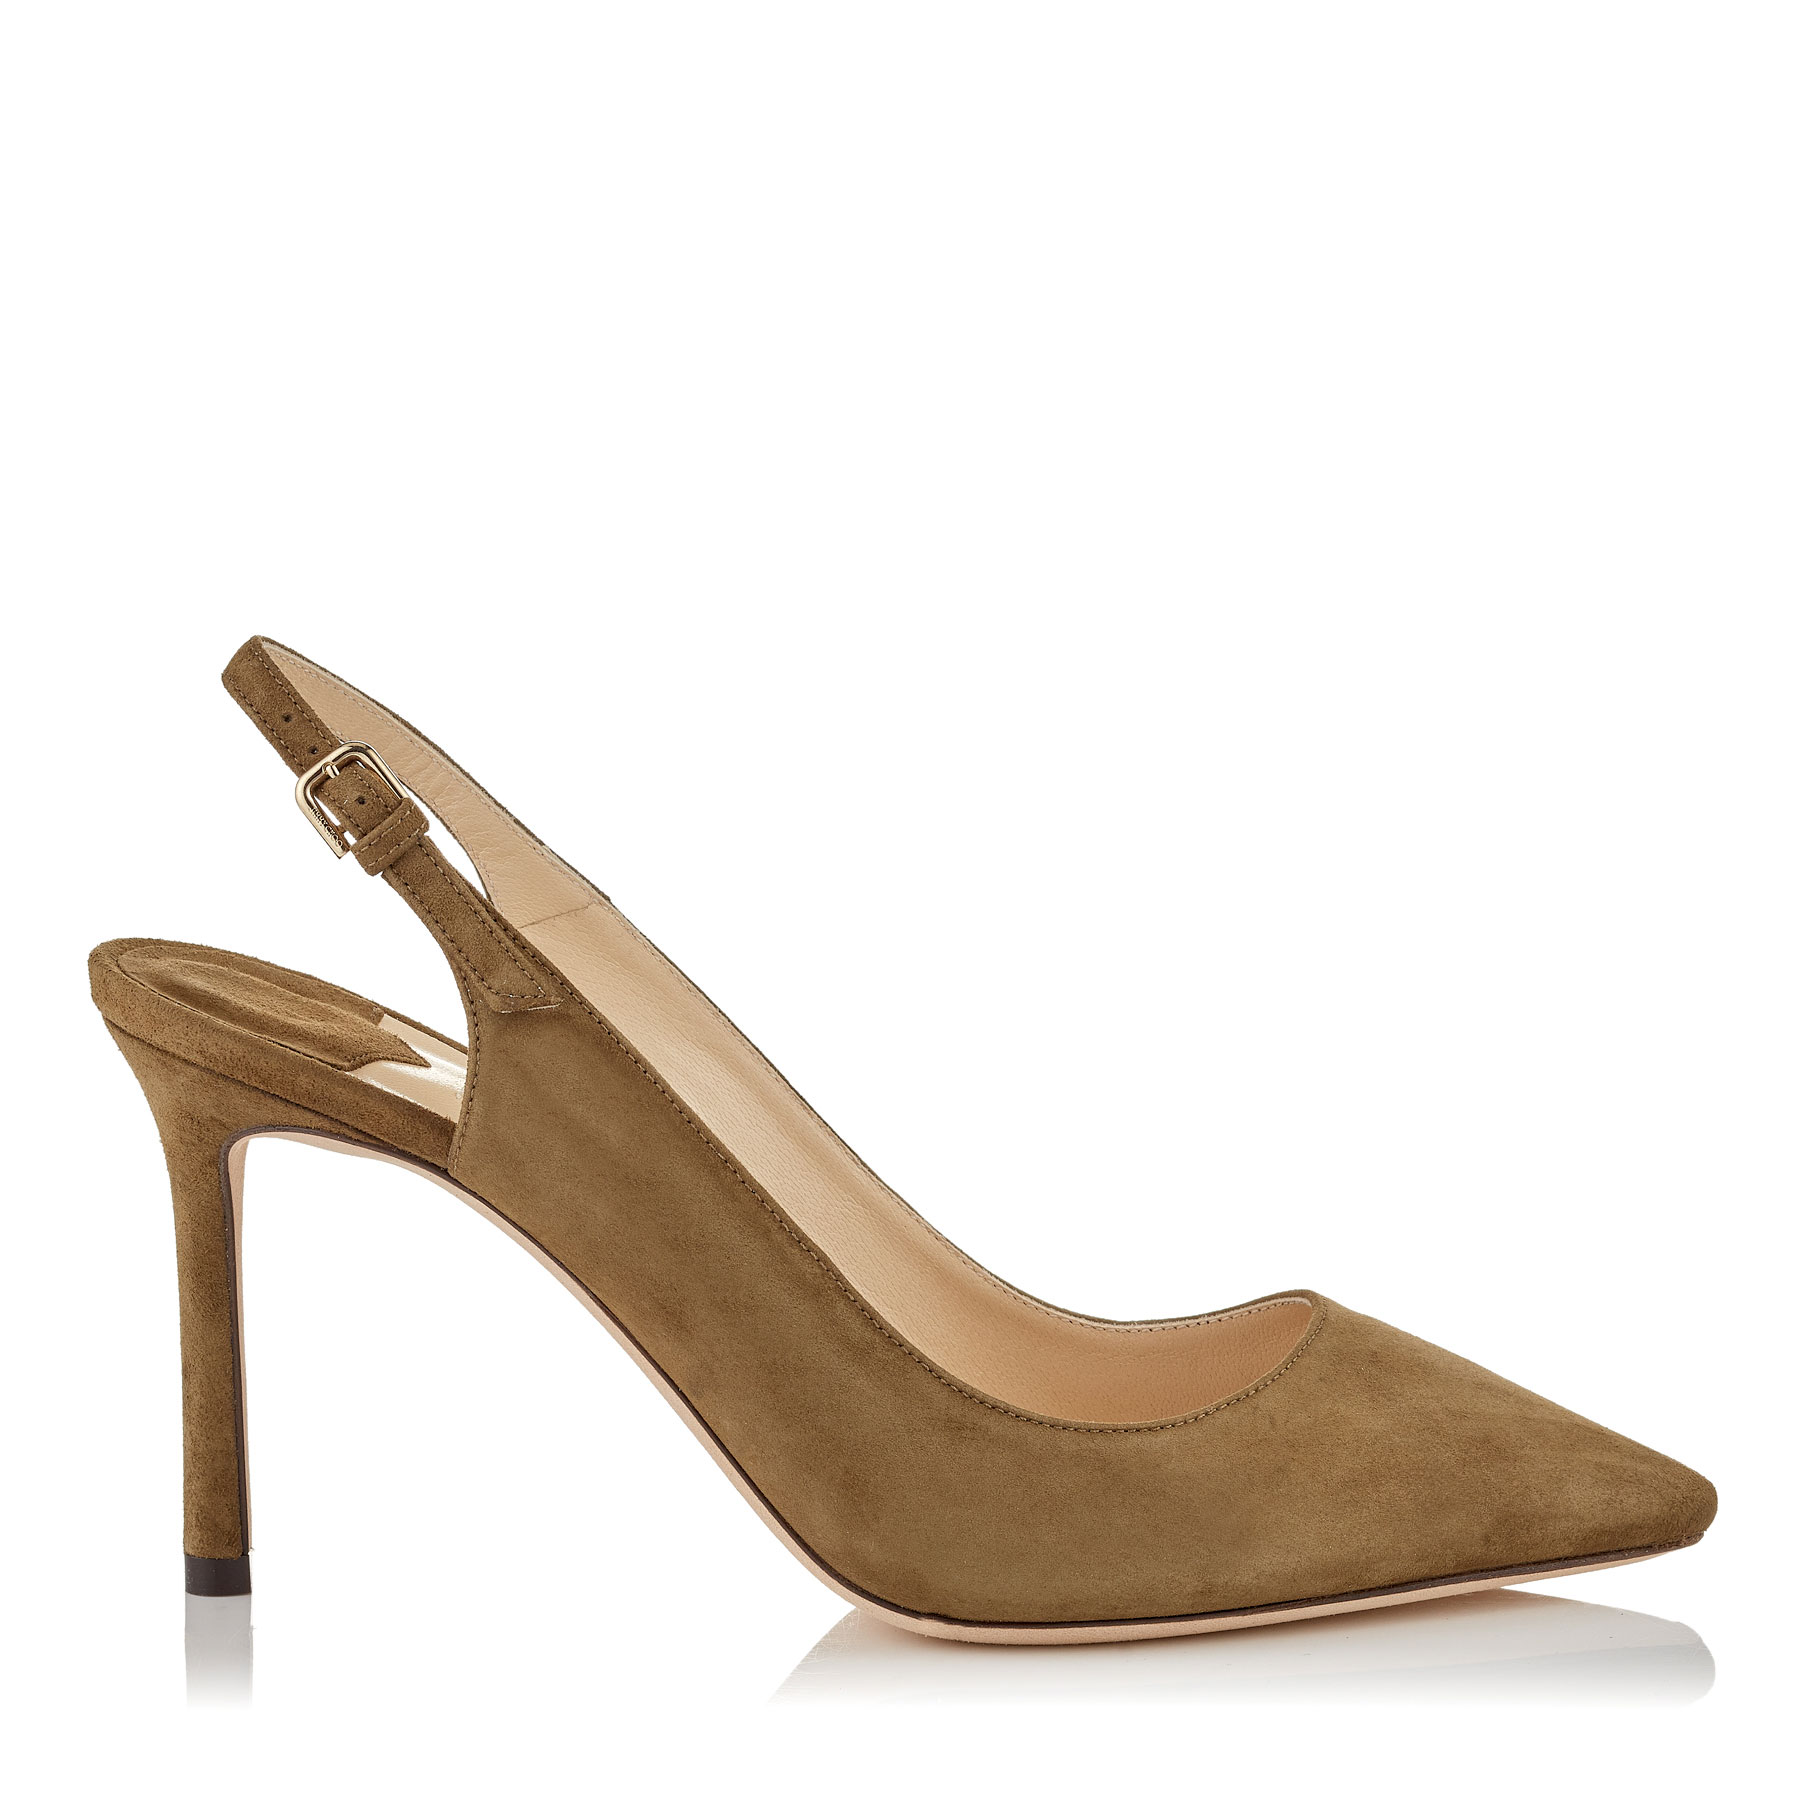 ERIN 85 Olive Suede Sling Back Pumps by Jimmy Choo